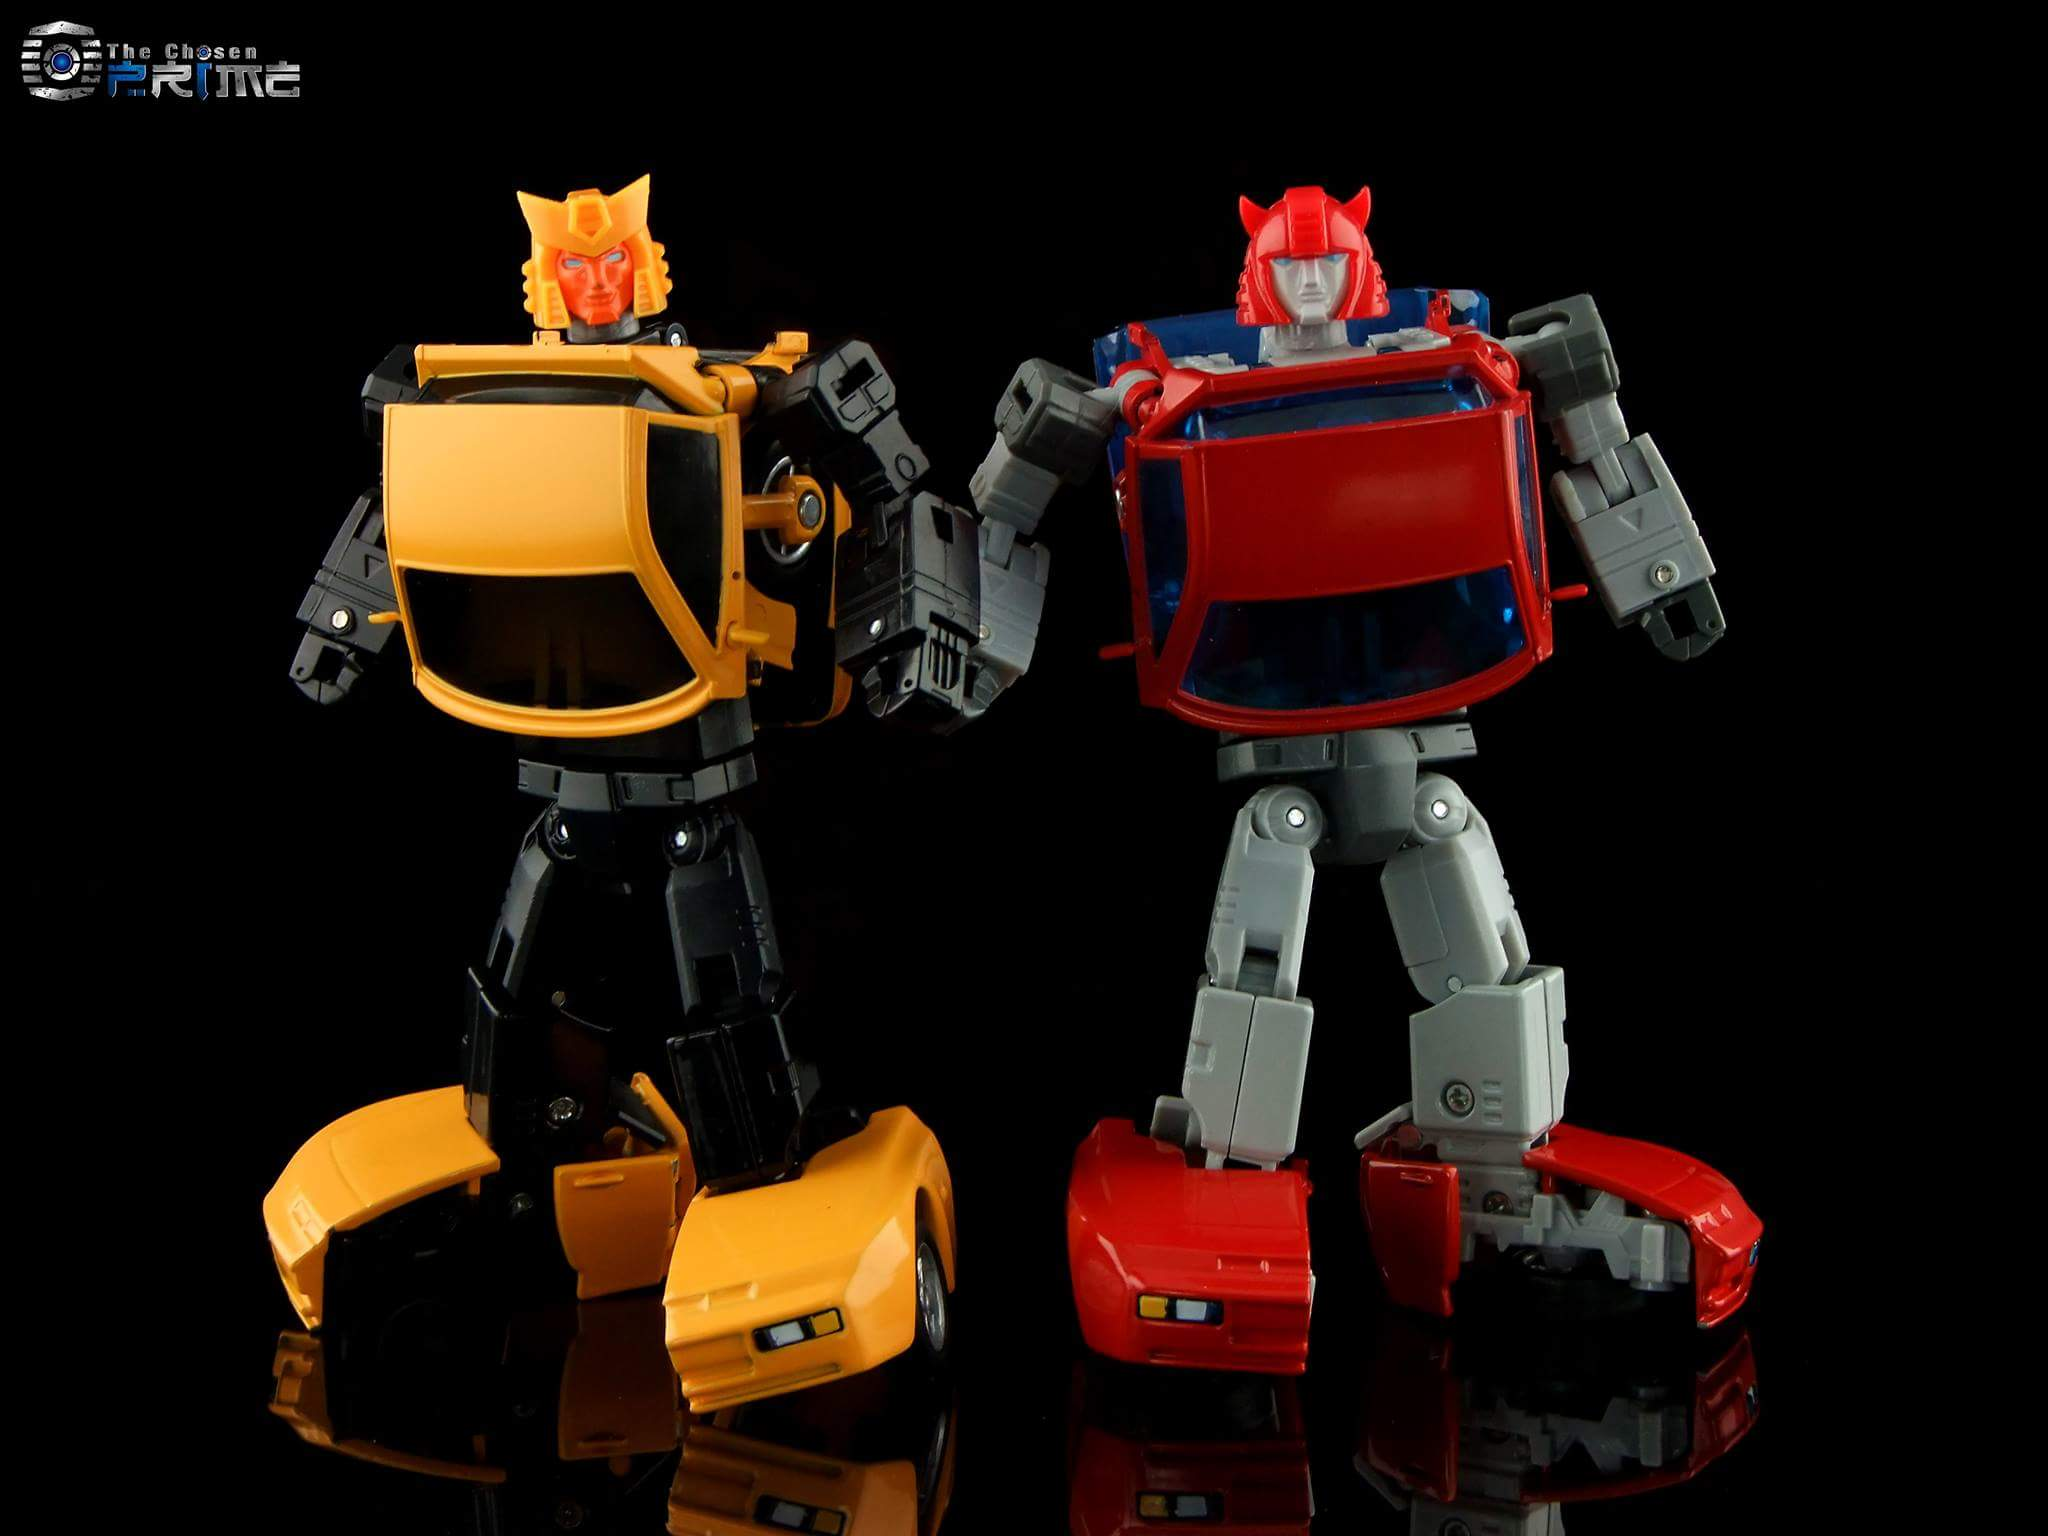 [ACE Collectables] Produit Tiers - Minibots MP - ACE-01 Tumbler (aka Cliffjumper/Matamore), ACE-02 Hiccups (aka Hubcap/Virevolto), ACE-03 Trident (aka Seaspray/Embruns) Pc7RGZ4Y